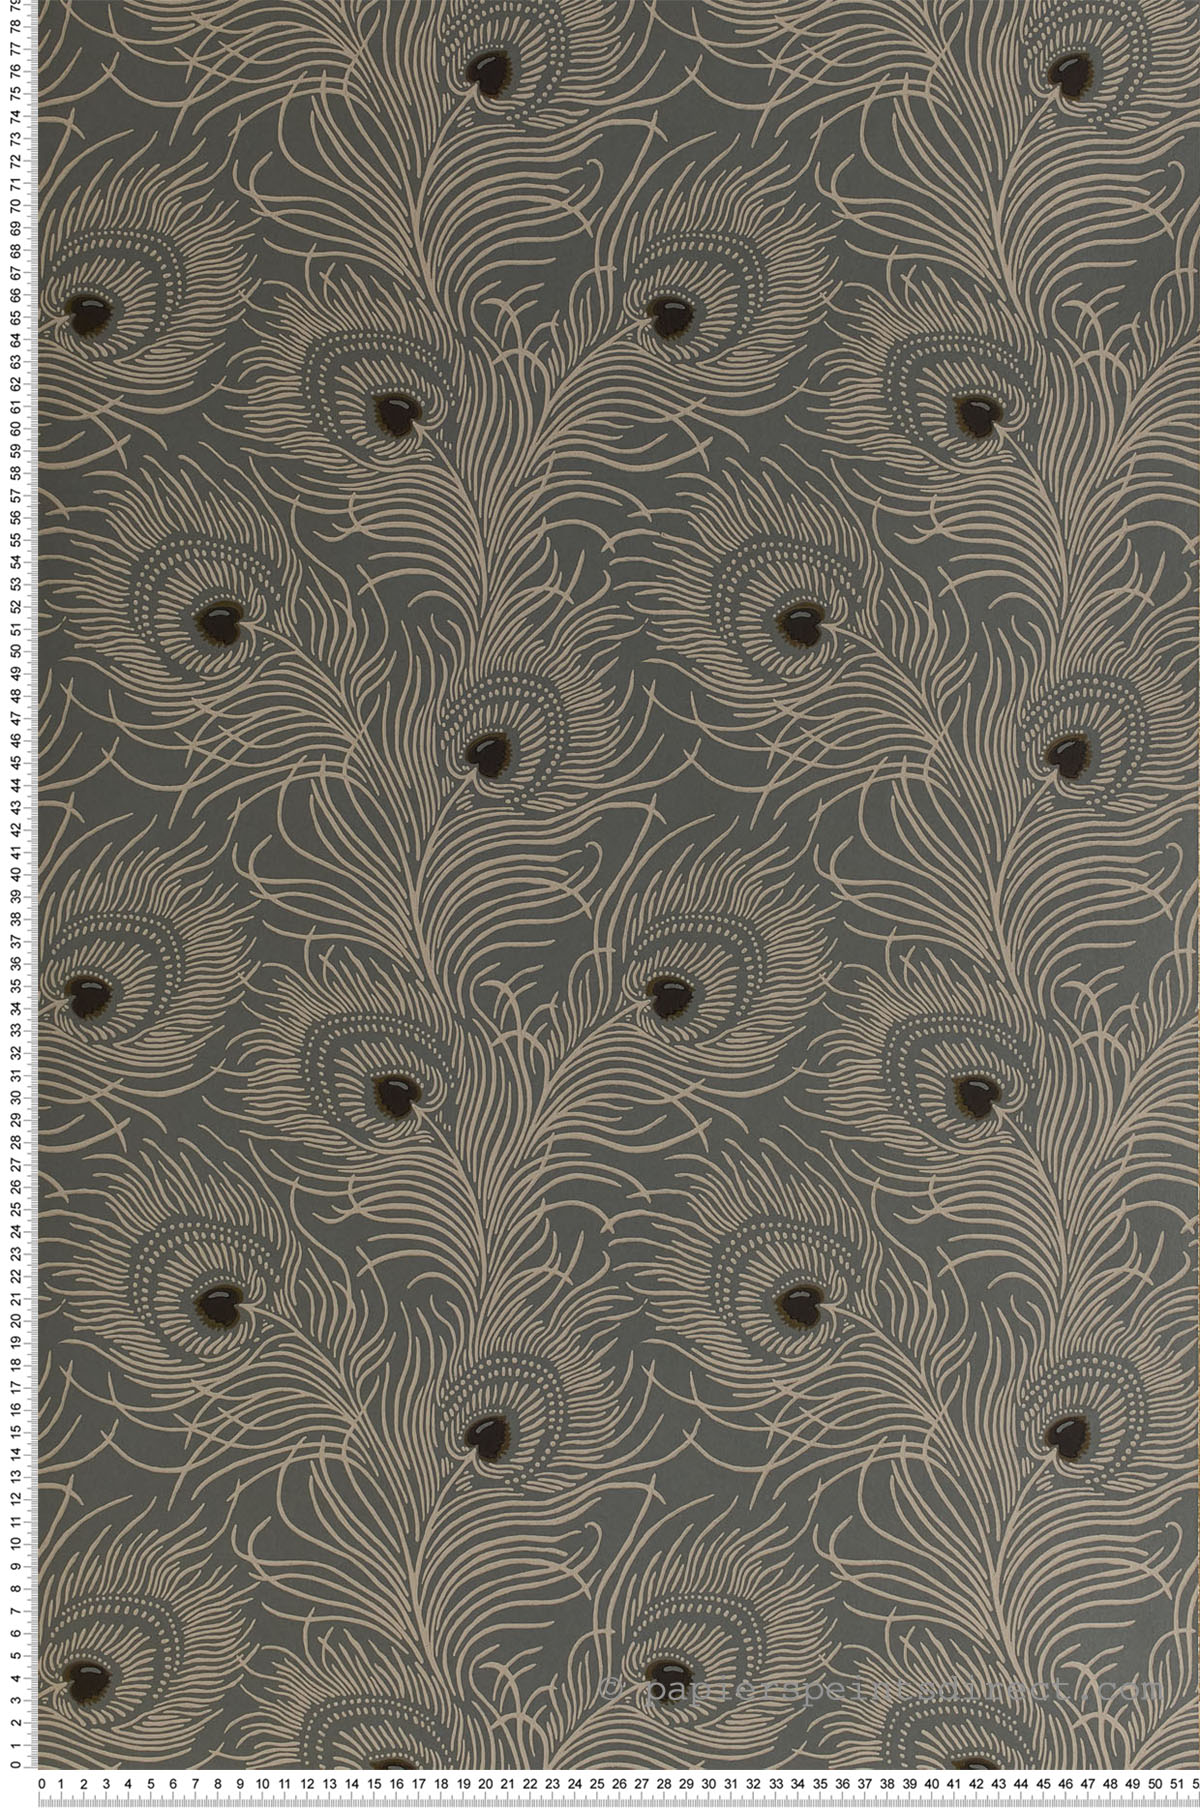 Papier peint Carlton House Terrace Slate - Collection London Wallpapers V de Little Greene